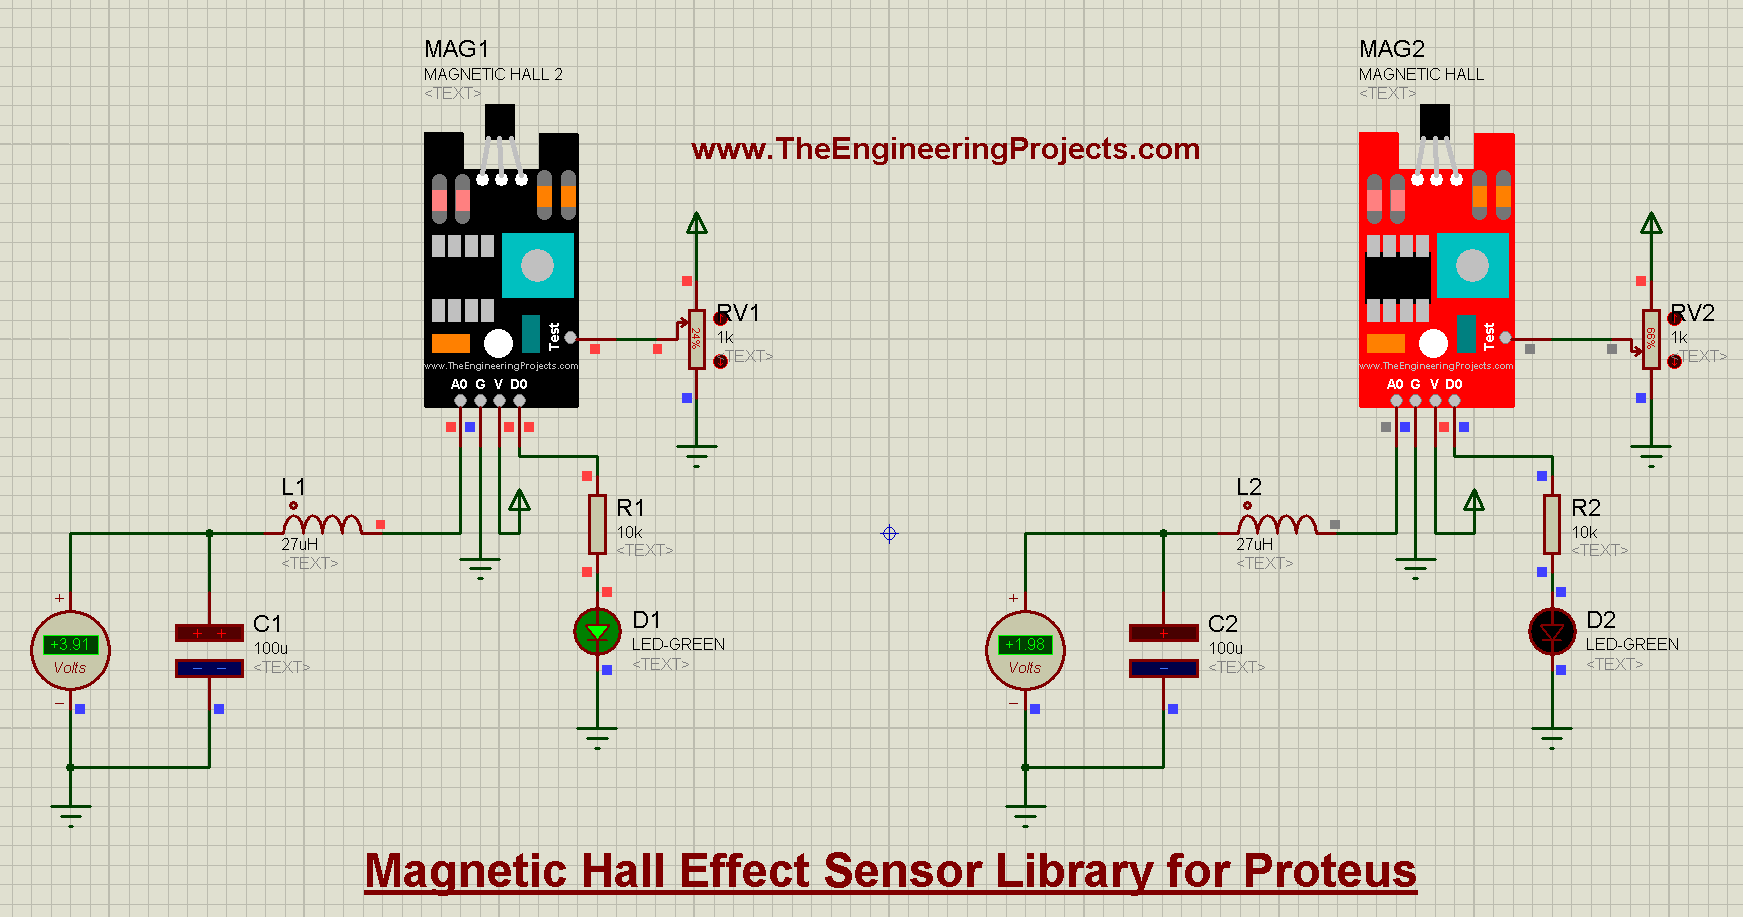 Magnetic Hall Effect Sensor Library for Proteus, magnetic hall effect sensor, Magnetic Hall Effect Sensor in Proteus, proteus simulation of hall effect, hall effect in proteus, hall effect sensor in proteus, ky024 in proteus, ky-024 proteus simulation